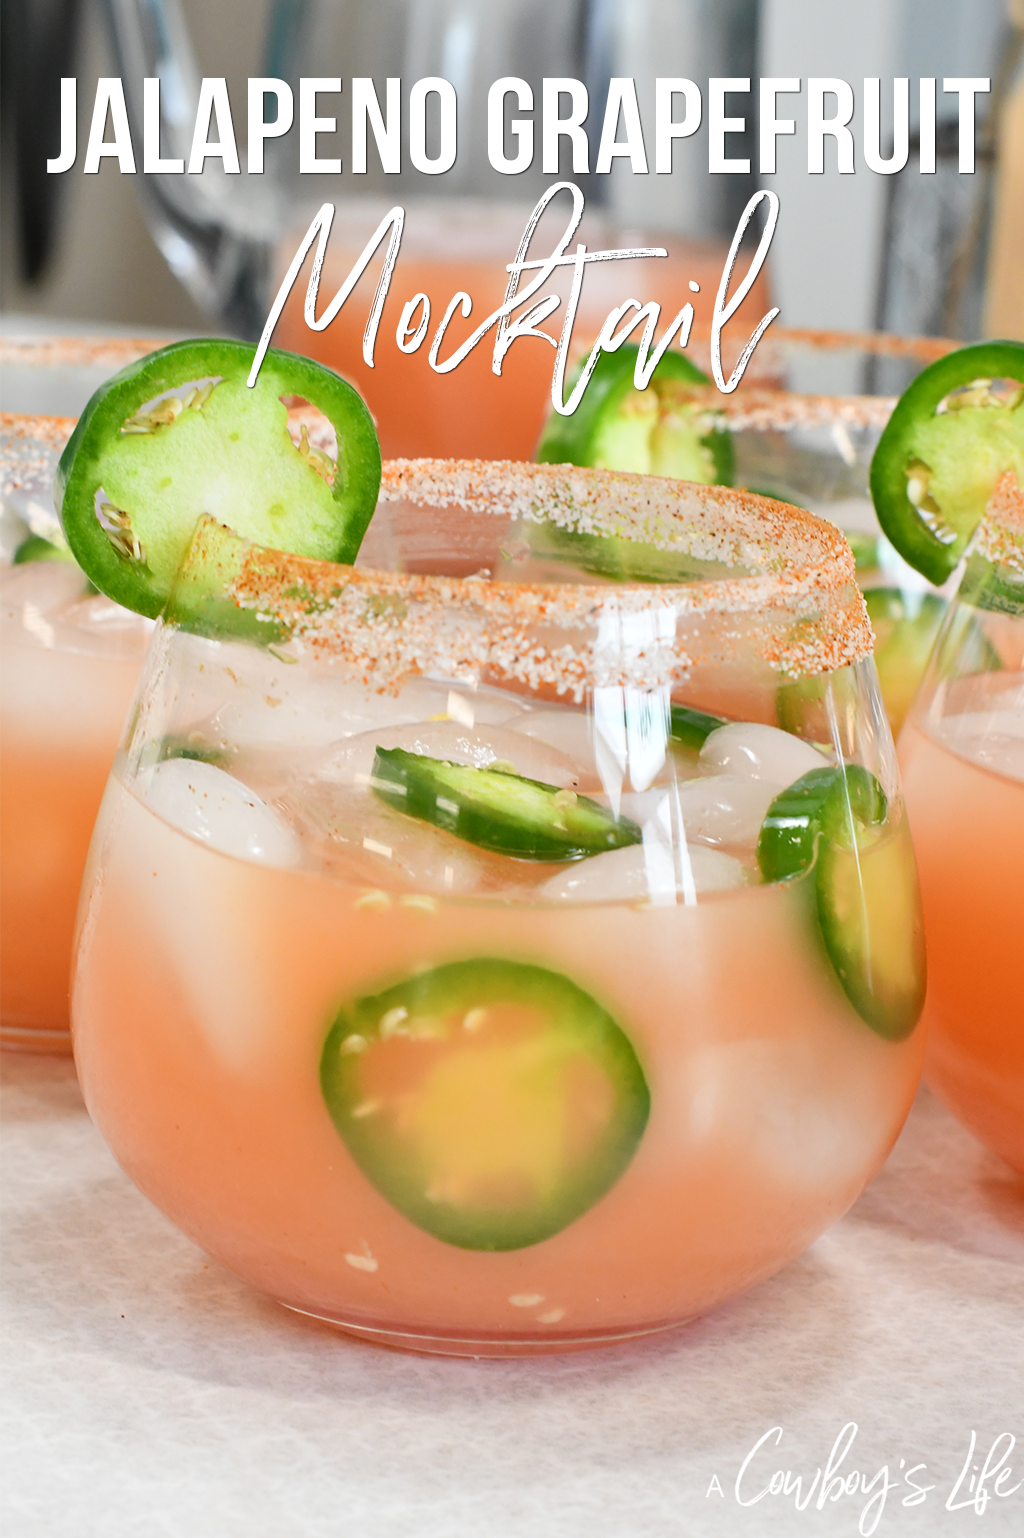 This Jalapeño Grapefruit mocktail is a fantastic way to spice up the party.